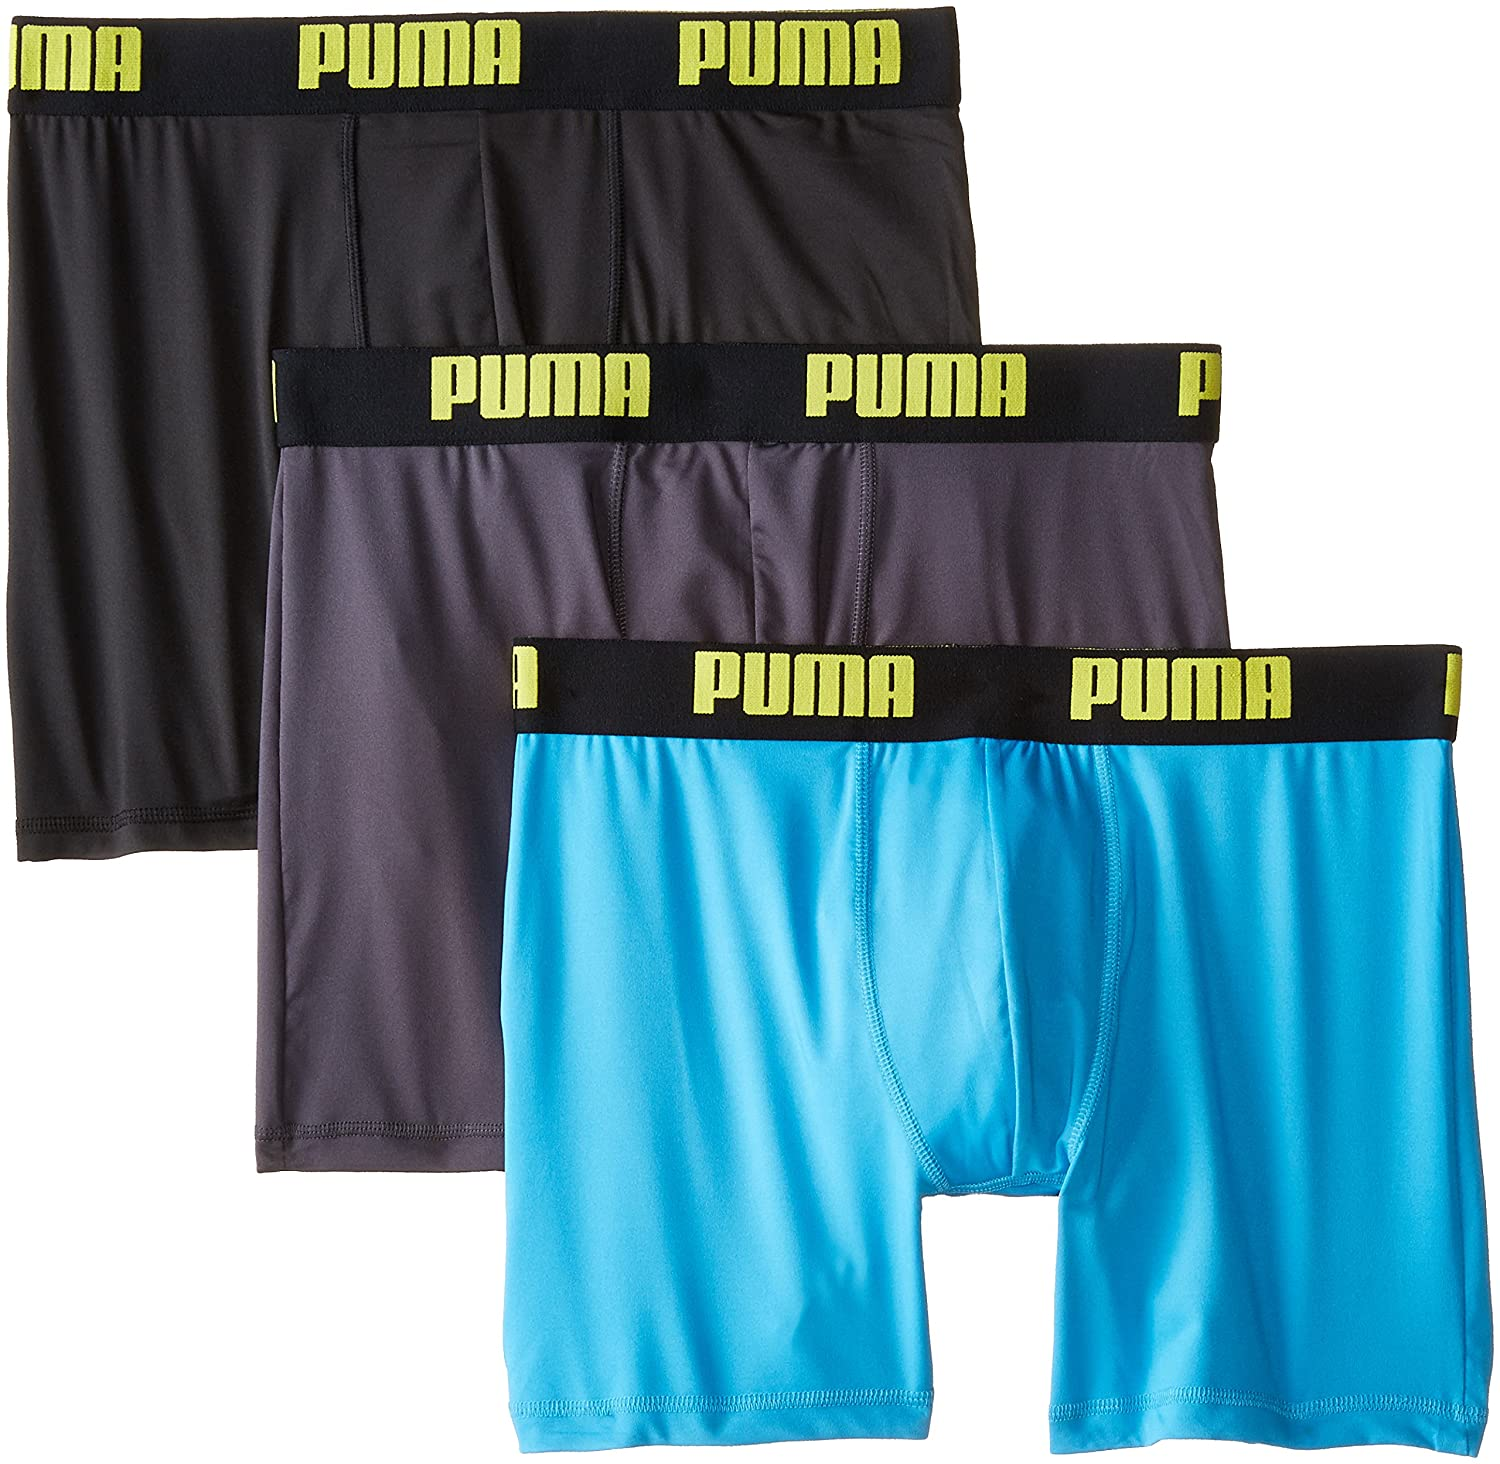 PUMA mens Volume Boxer Brief (3-pack) Puma Men' s Underwear PUMFW1511564